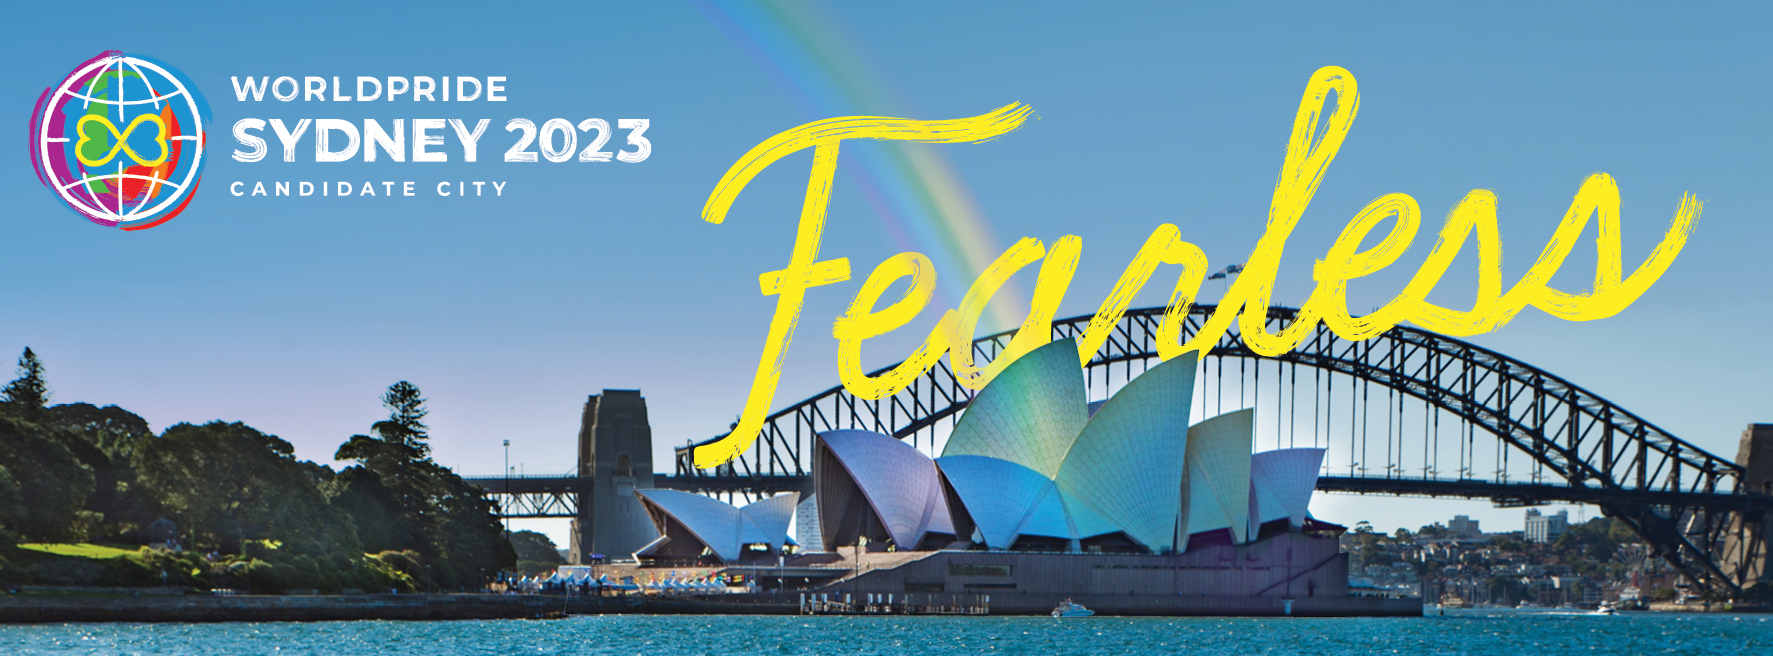 Sydney Gay and Lesbian Mardi Gras partners with Red Havas to support its bid for WorldPride 2023